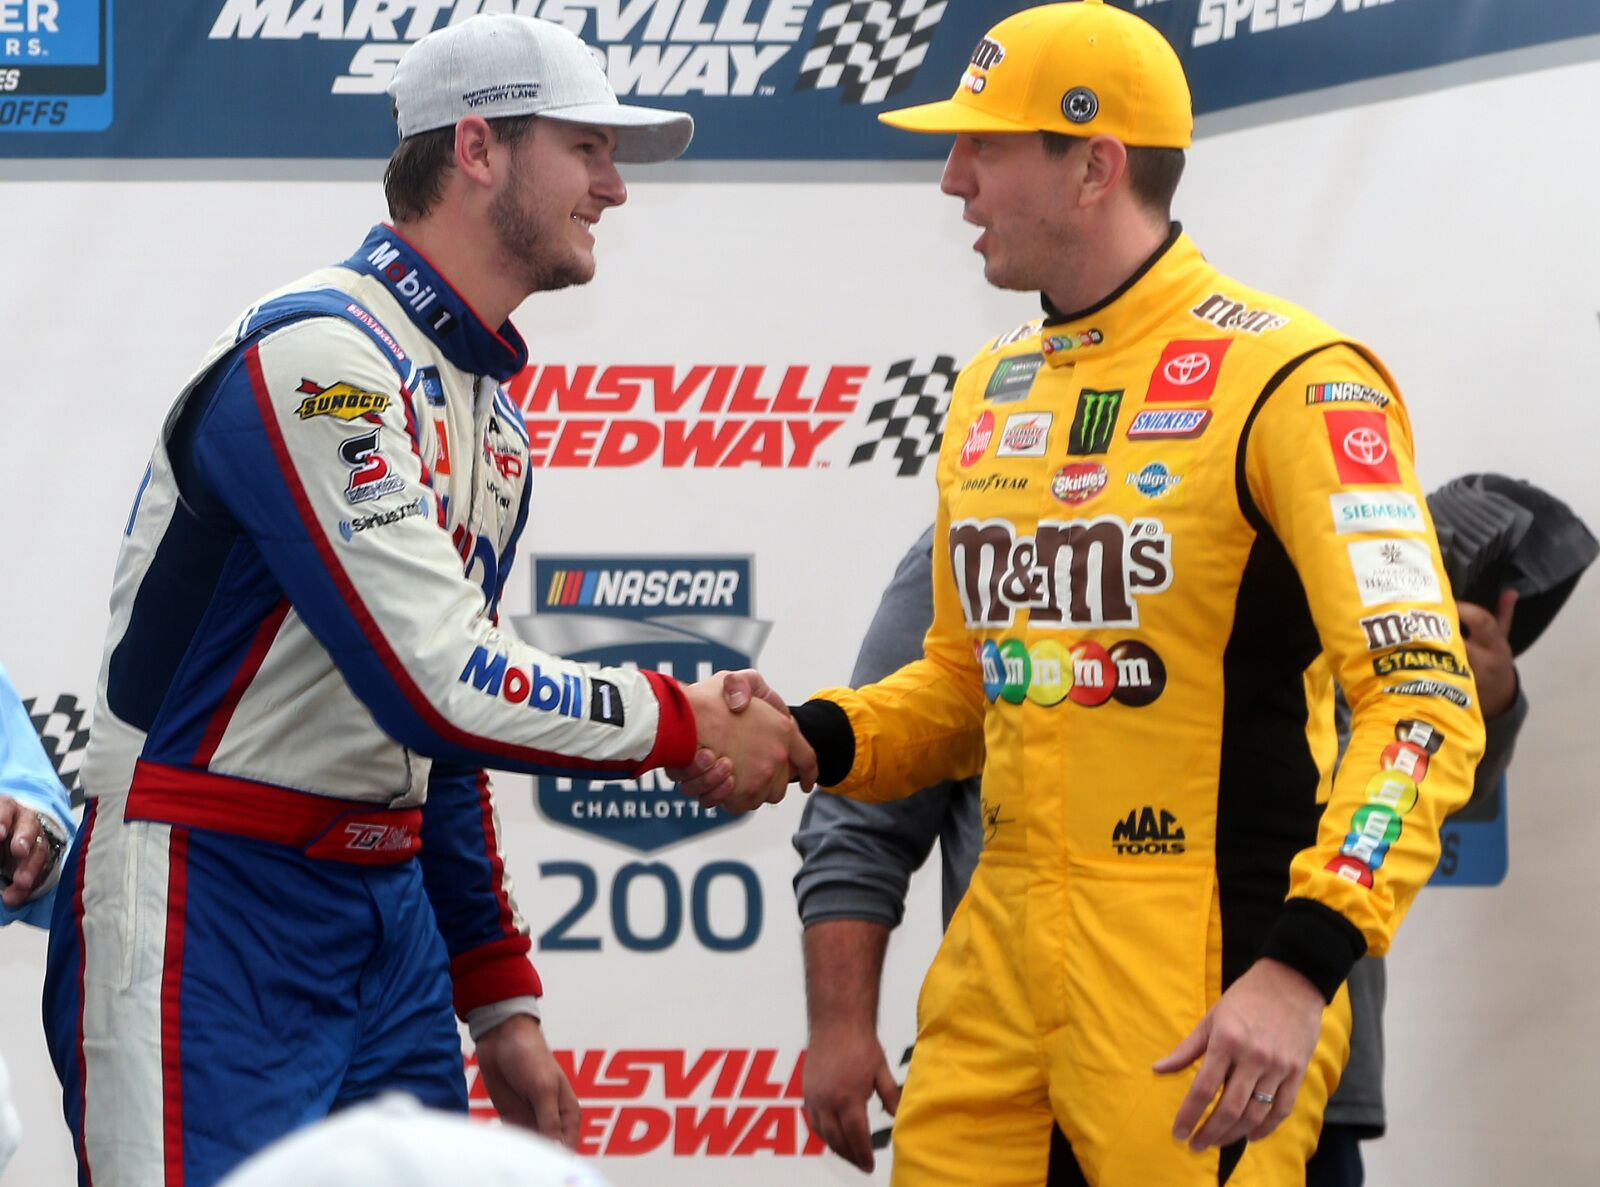 NASCAR: Todd Gilliland tells Kyle Busch to stay in his f—ing motorhome